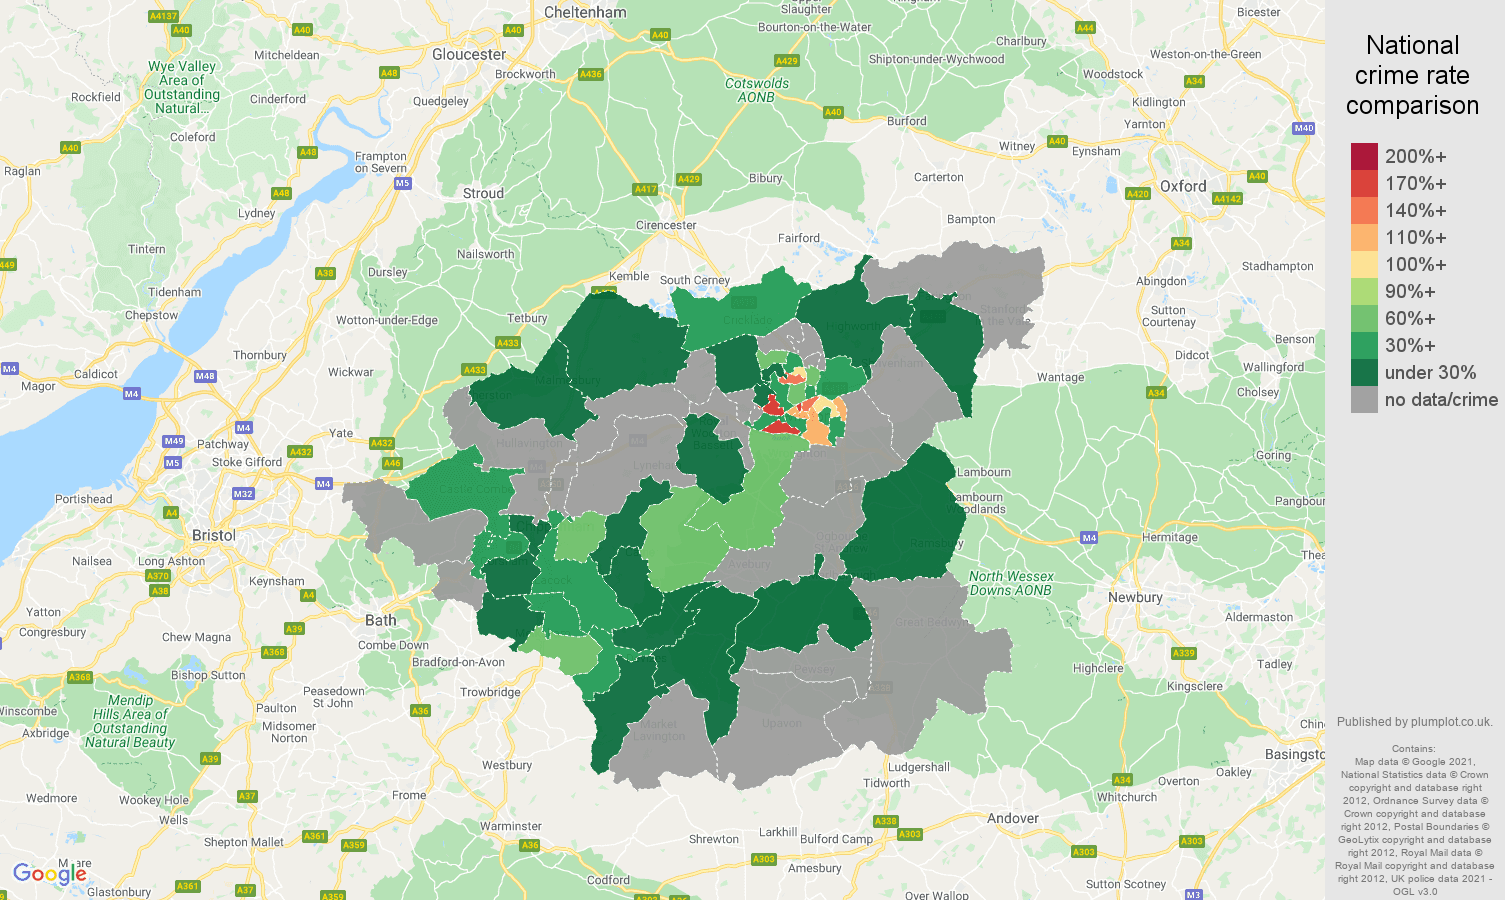 Swindon robbery crime rate comparison map